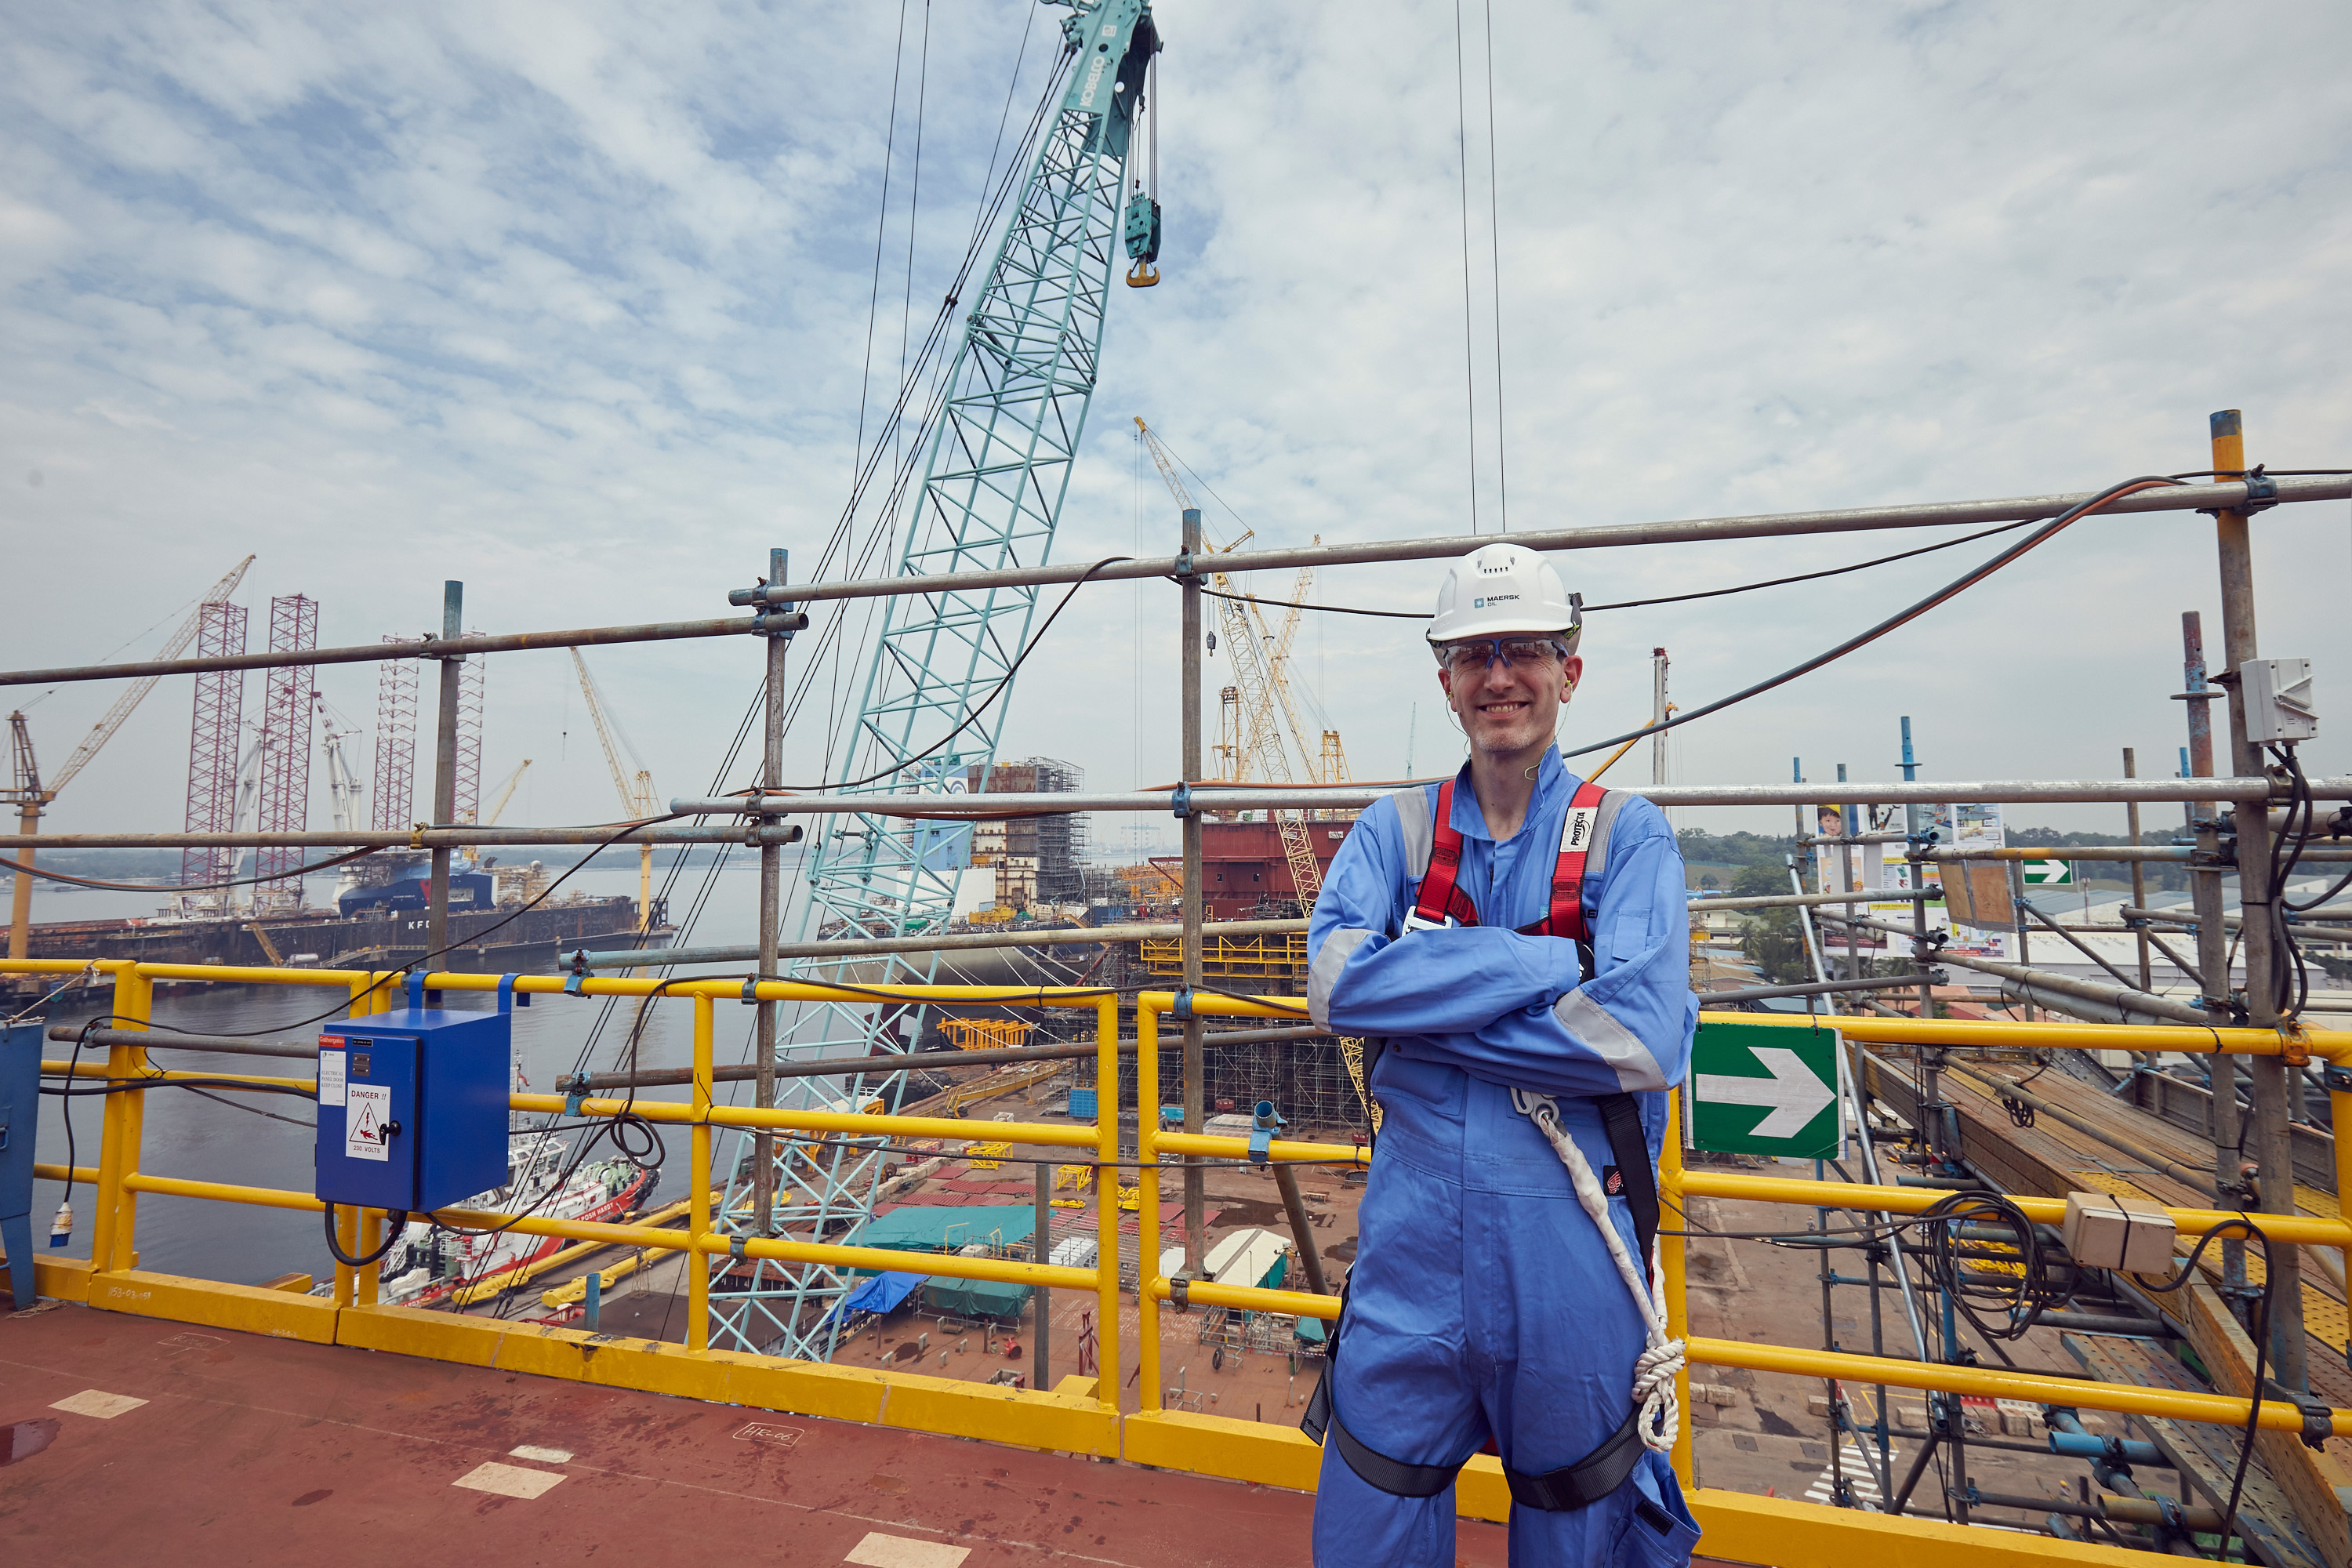 Morten Kelstrup, managing director of Maersk Oil North Sea UK, on top of the central processing facility (CPF) for the Culzean field. The platform is being built at Sembcorp Marine's Admiralty Yard in Singapore. Photograph courtesy of Alfred NG Photography and Maersk Oil UK